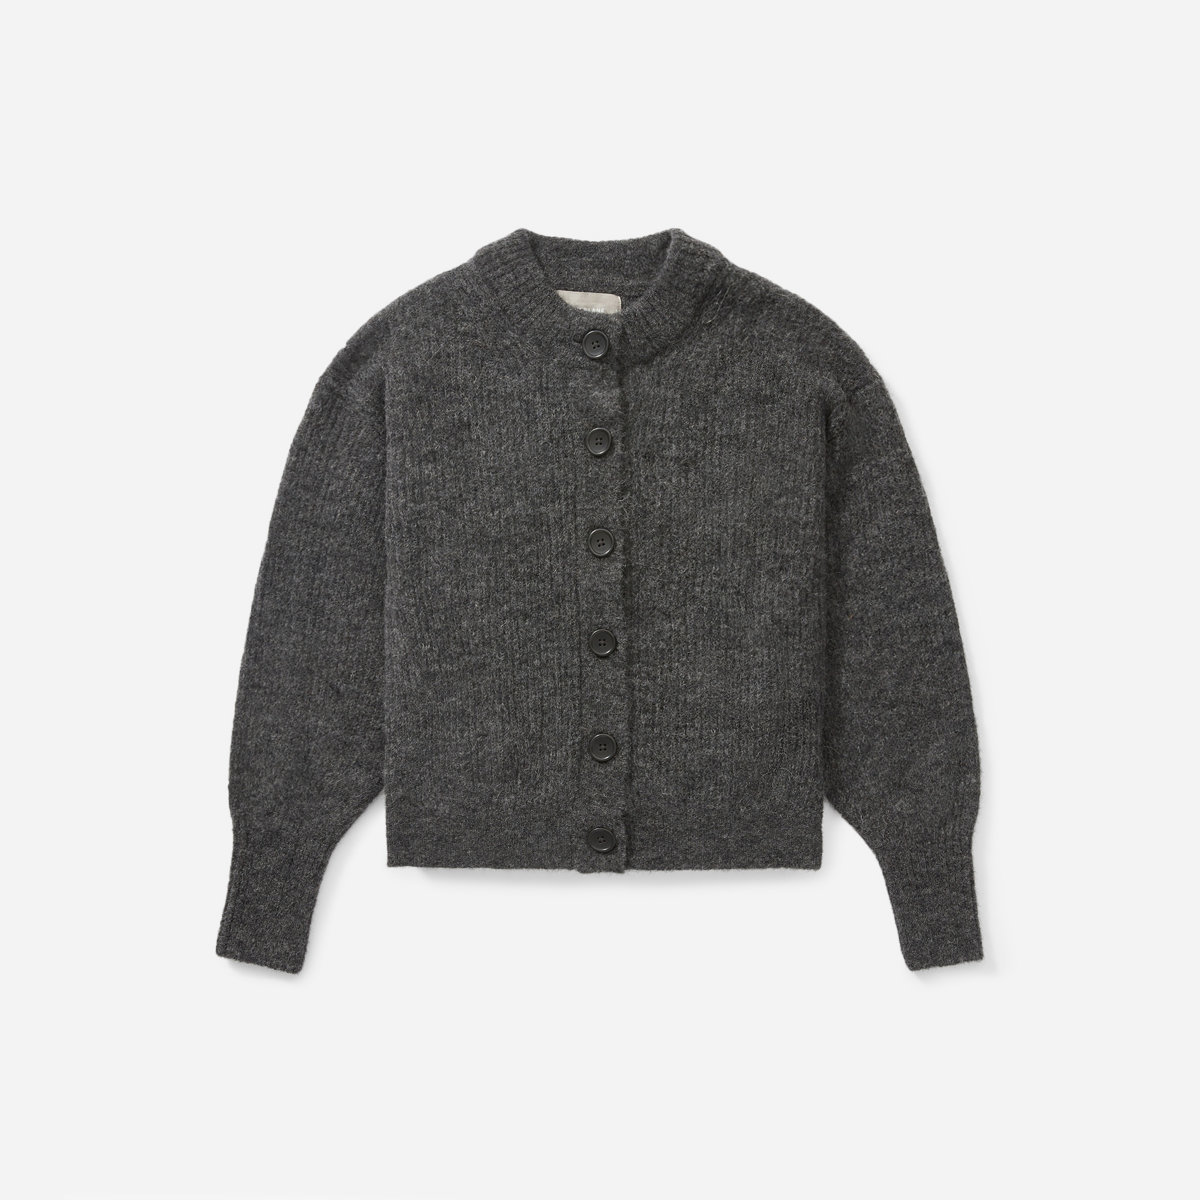 Everlane The Cropped Alpaca Cardigan, $100, available here.